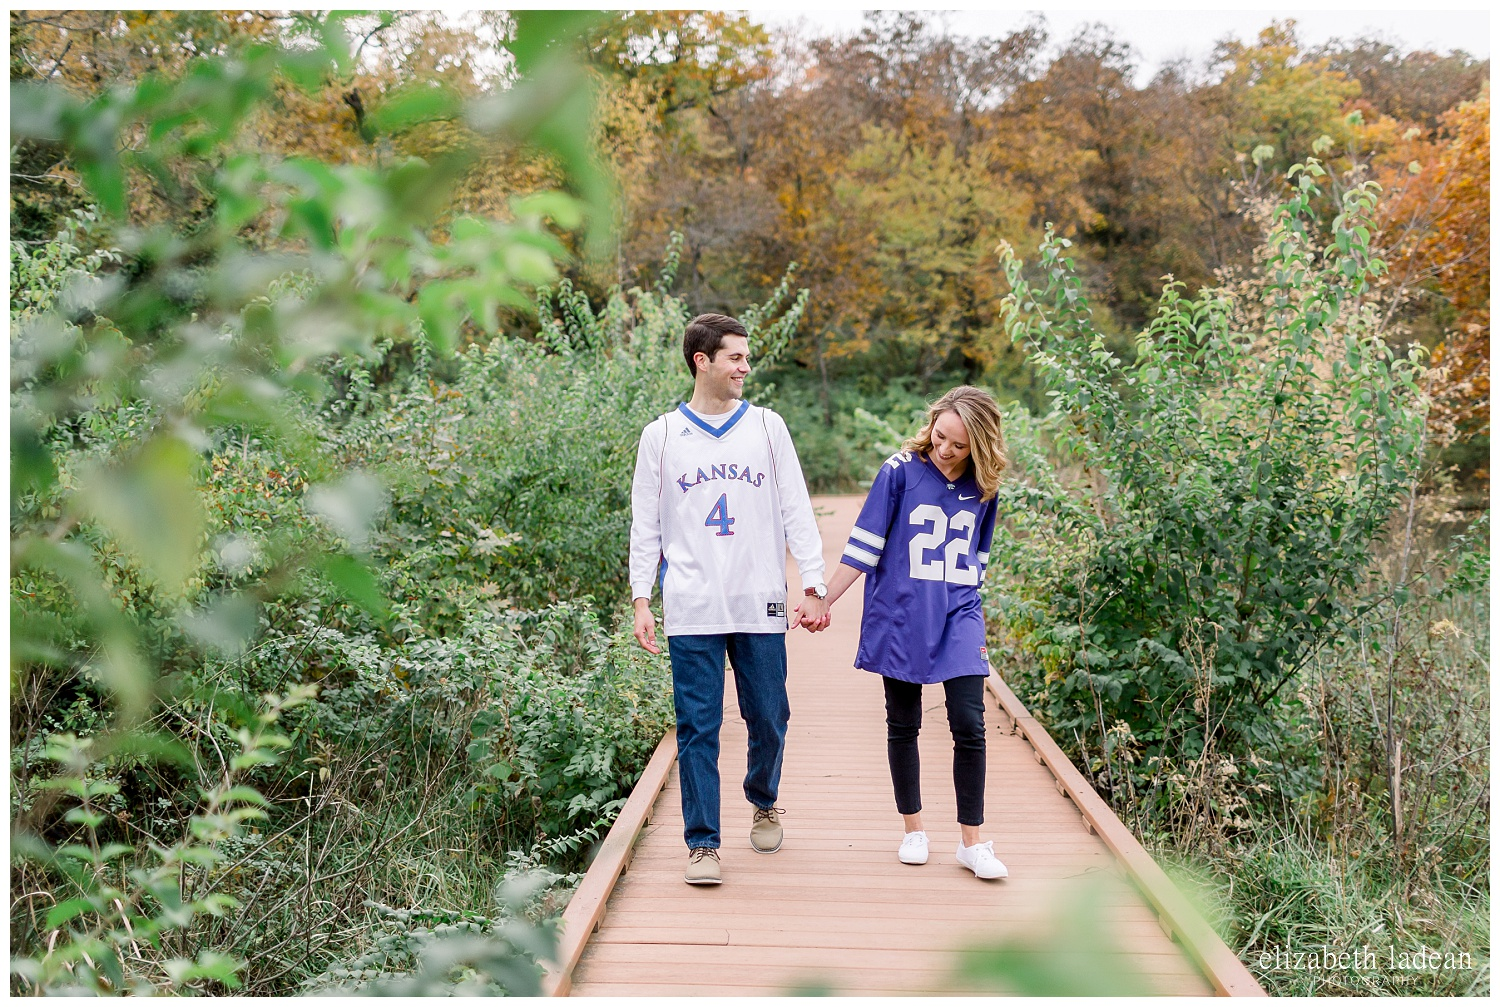 Colorful-Fall-Engagement-Photos-in-KC-C+B-2018-elizabeth-ladean-photography-photo_1797.jpg